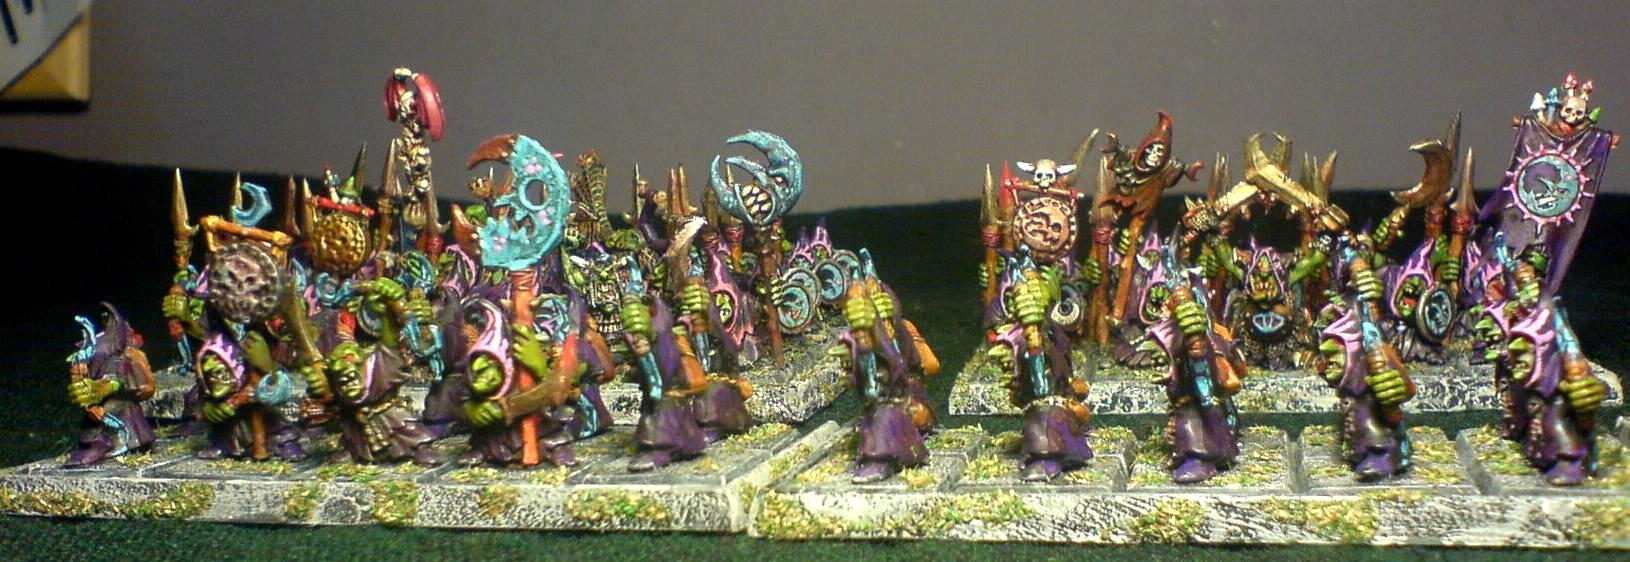 Goblins, Night Goblins, Orcs And Goblins, Purple